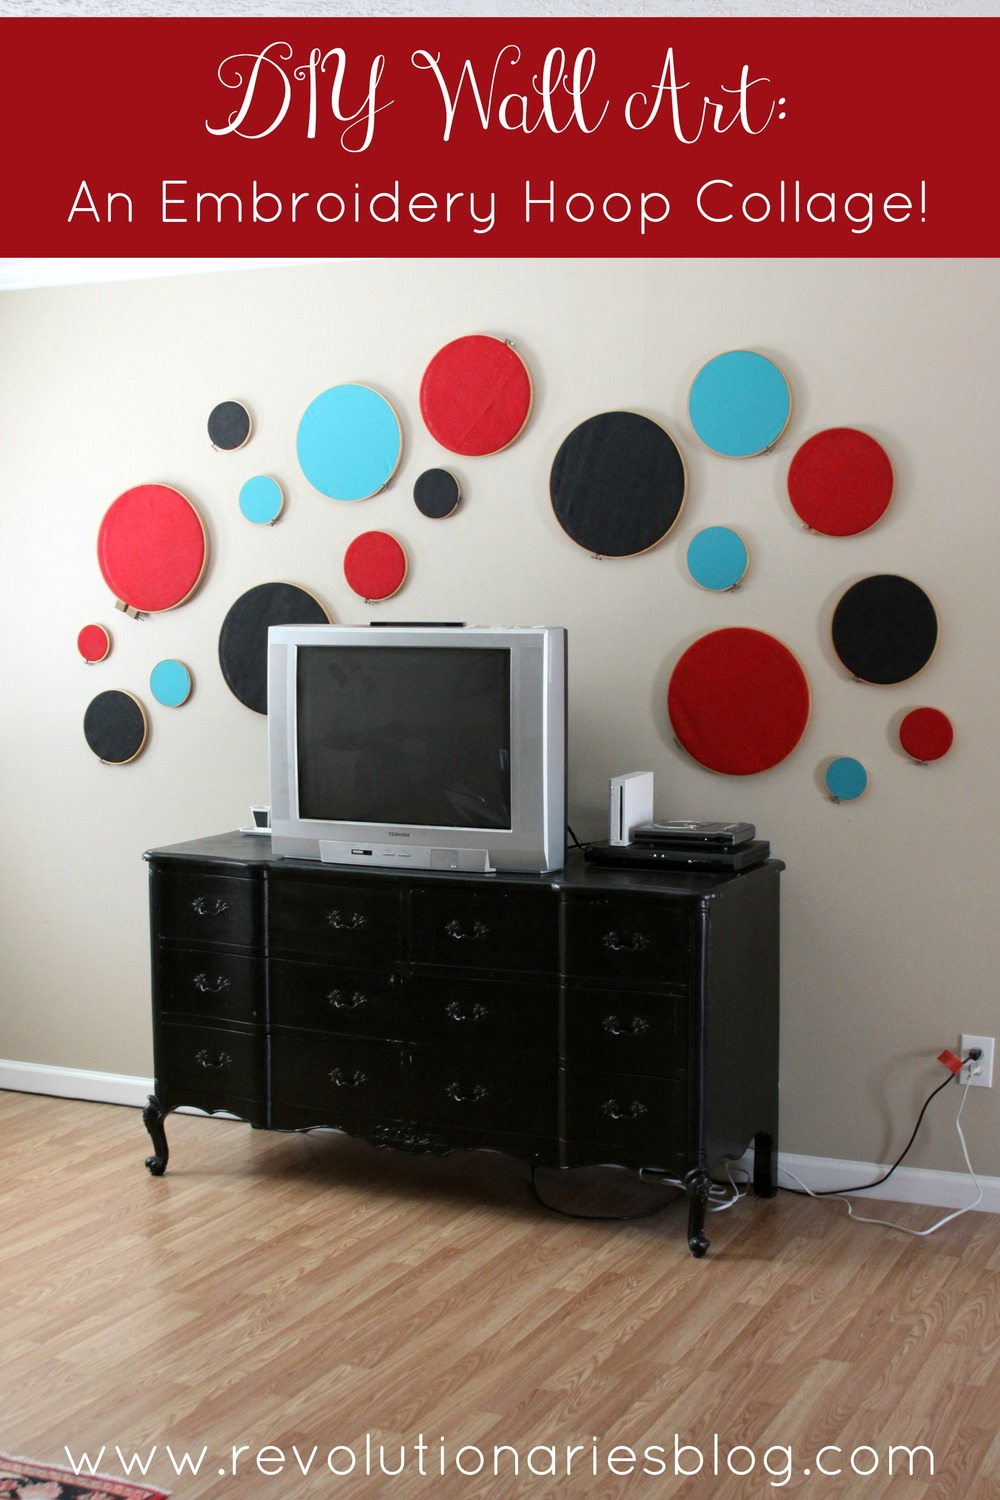 diy-wall-art-an-embroidery-hoop-collage.jpg